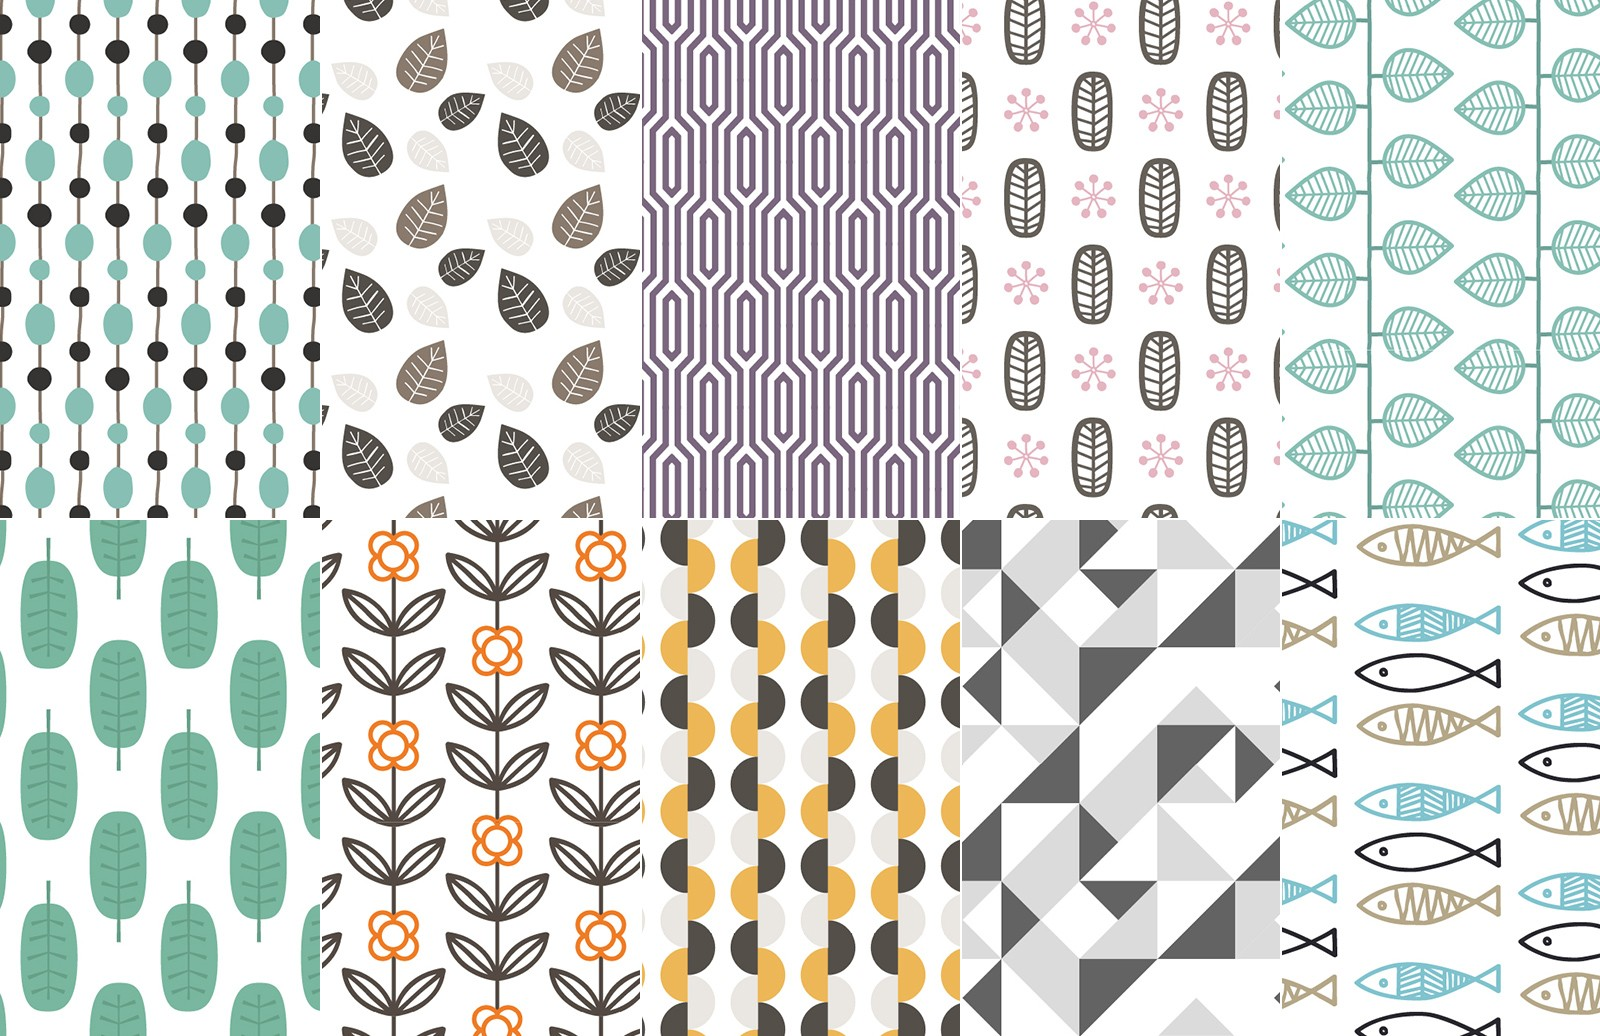 Seamless Scandinavian Vector Patterns 2